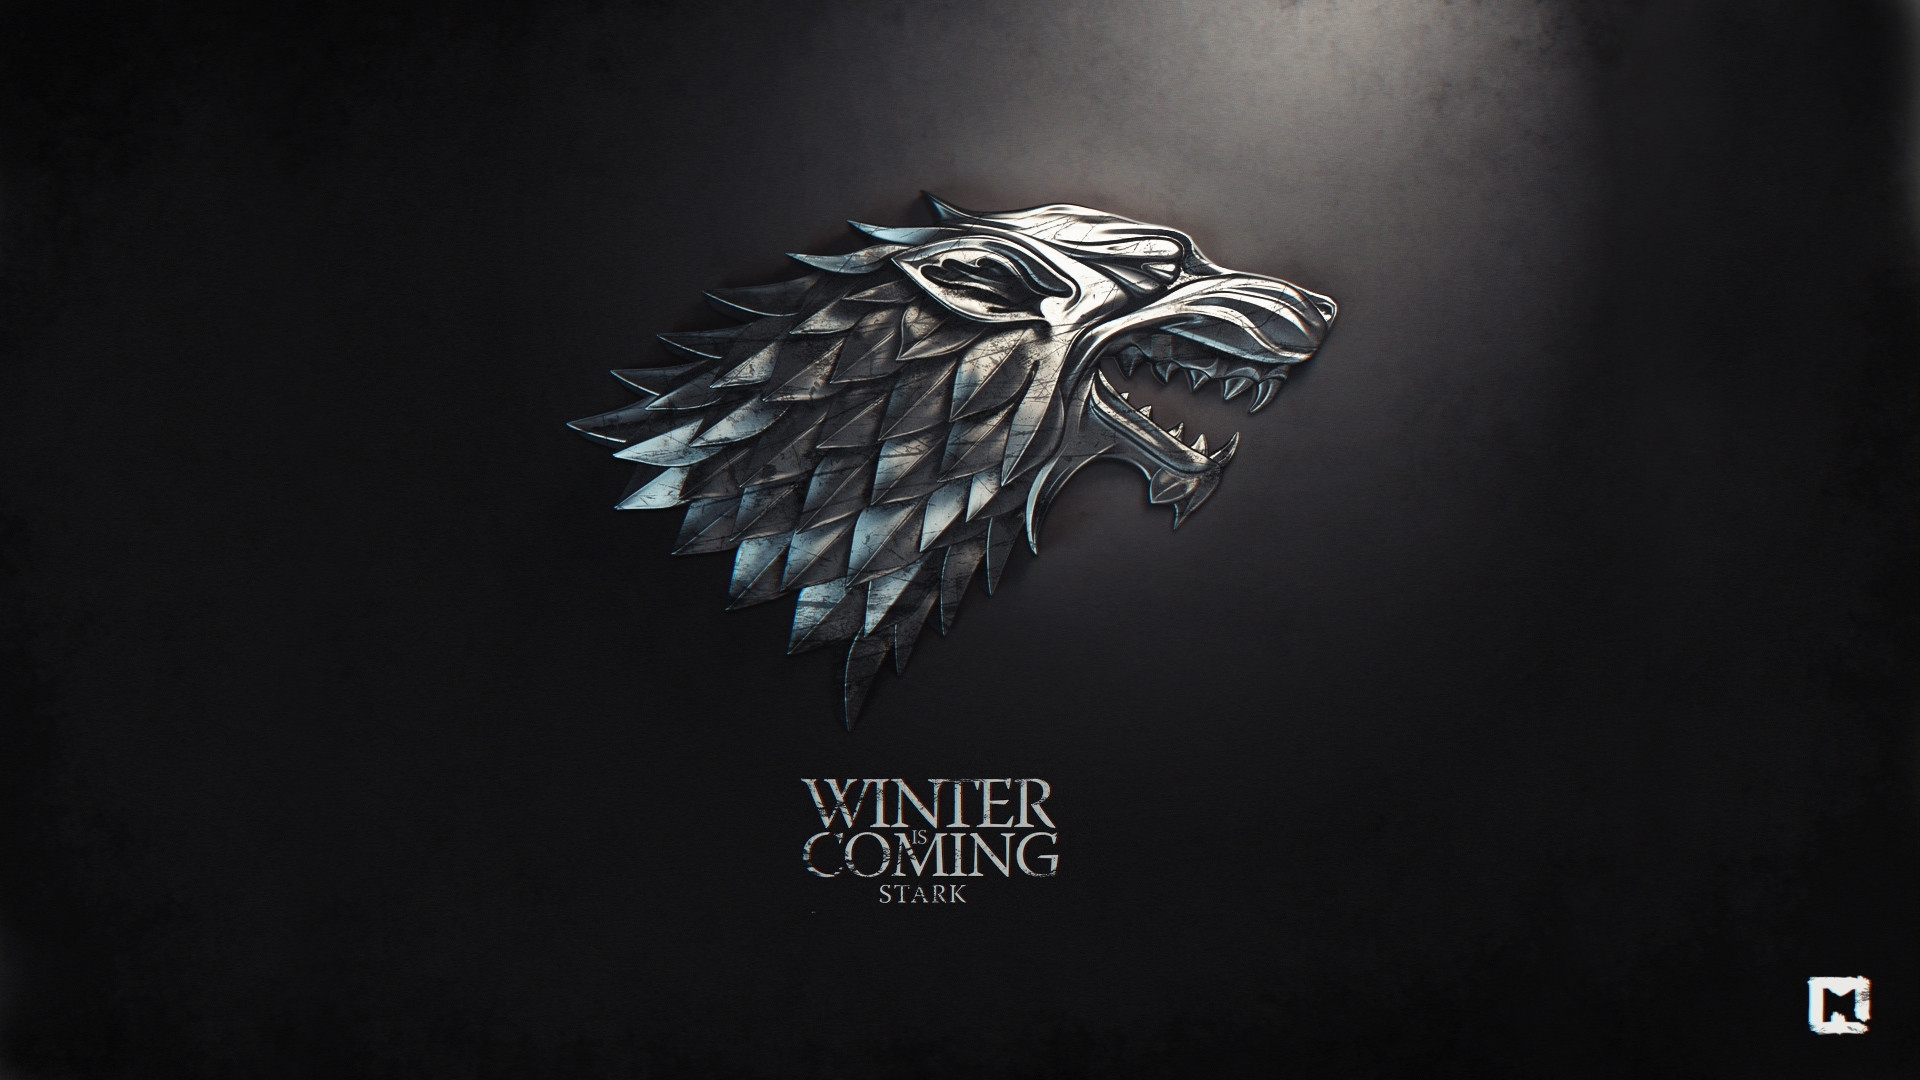 10 Top Game Of Thrones Sigils Wallpaper FULL HD 1080p For PC Desktop